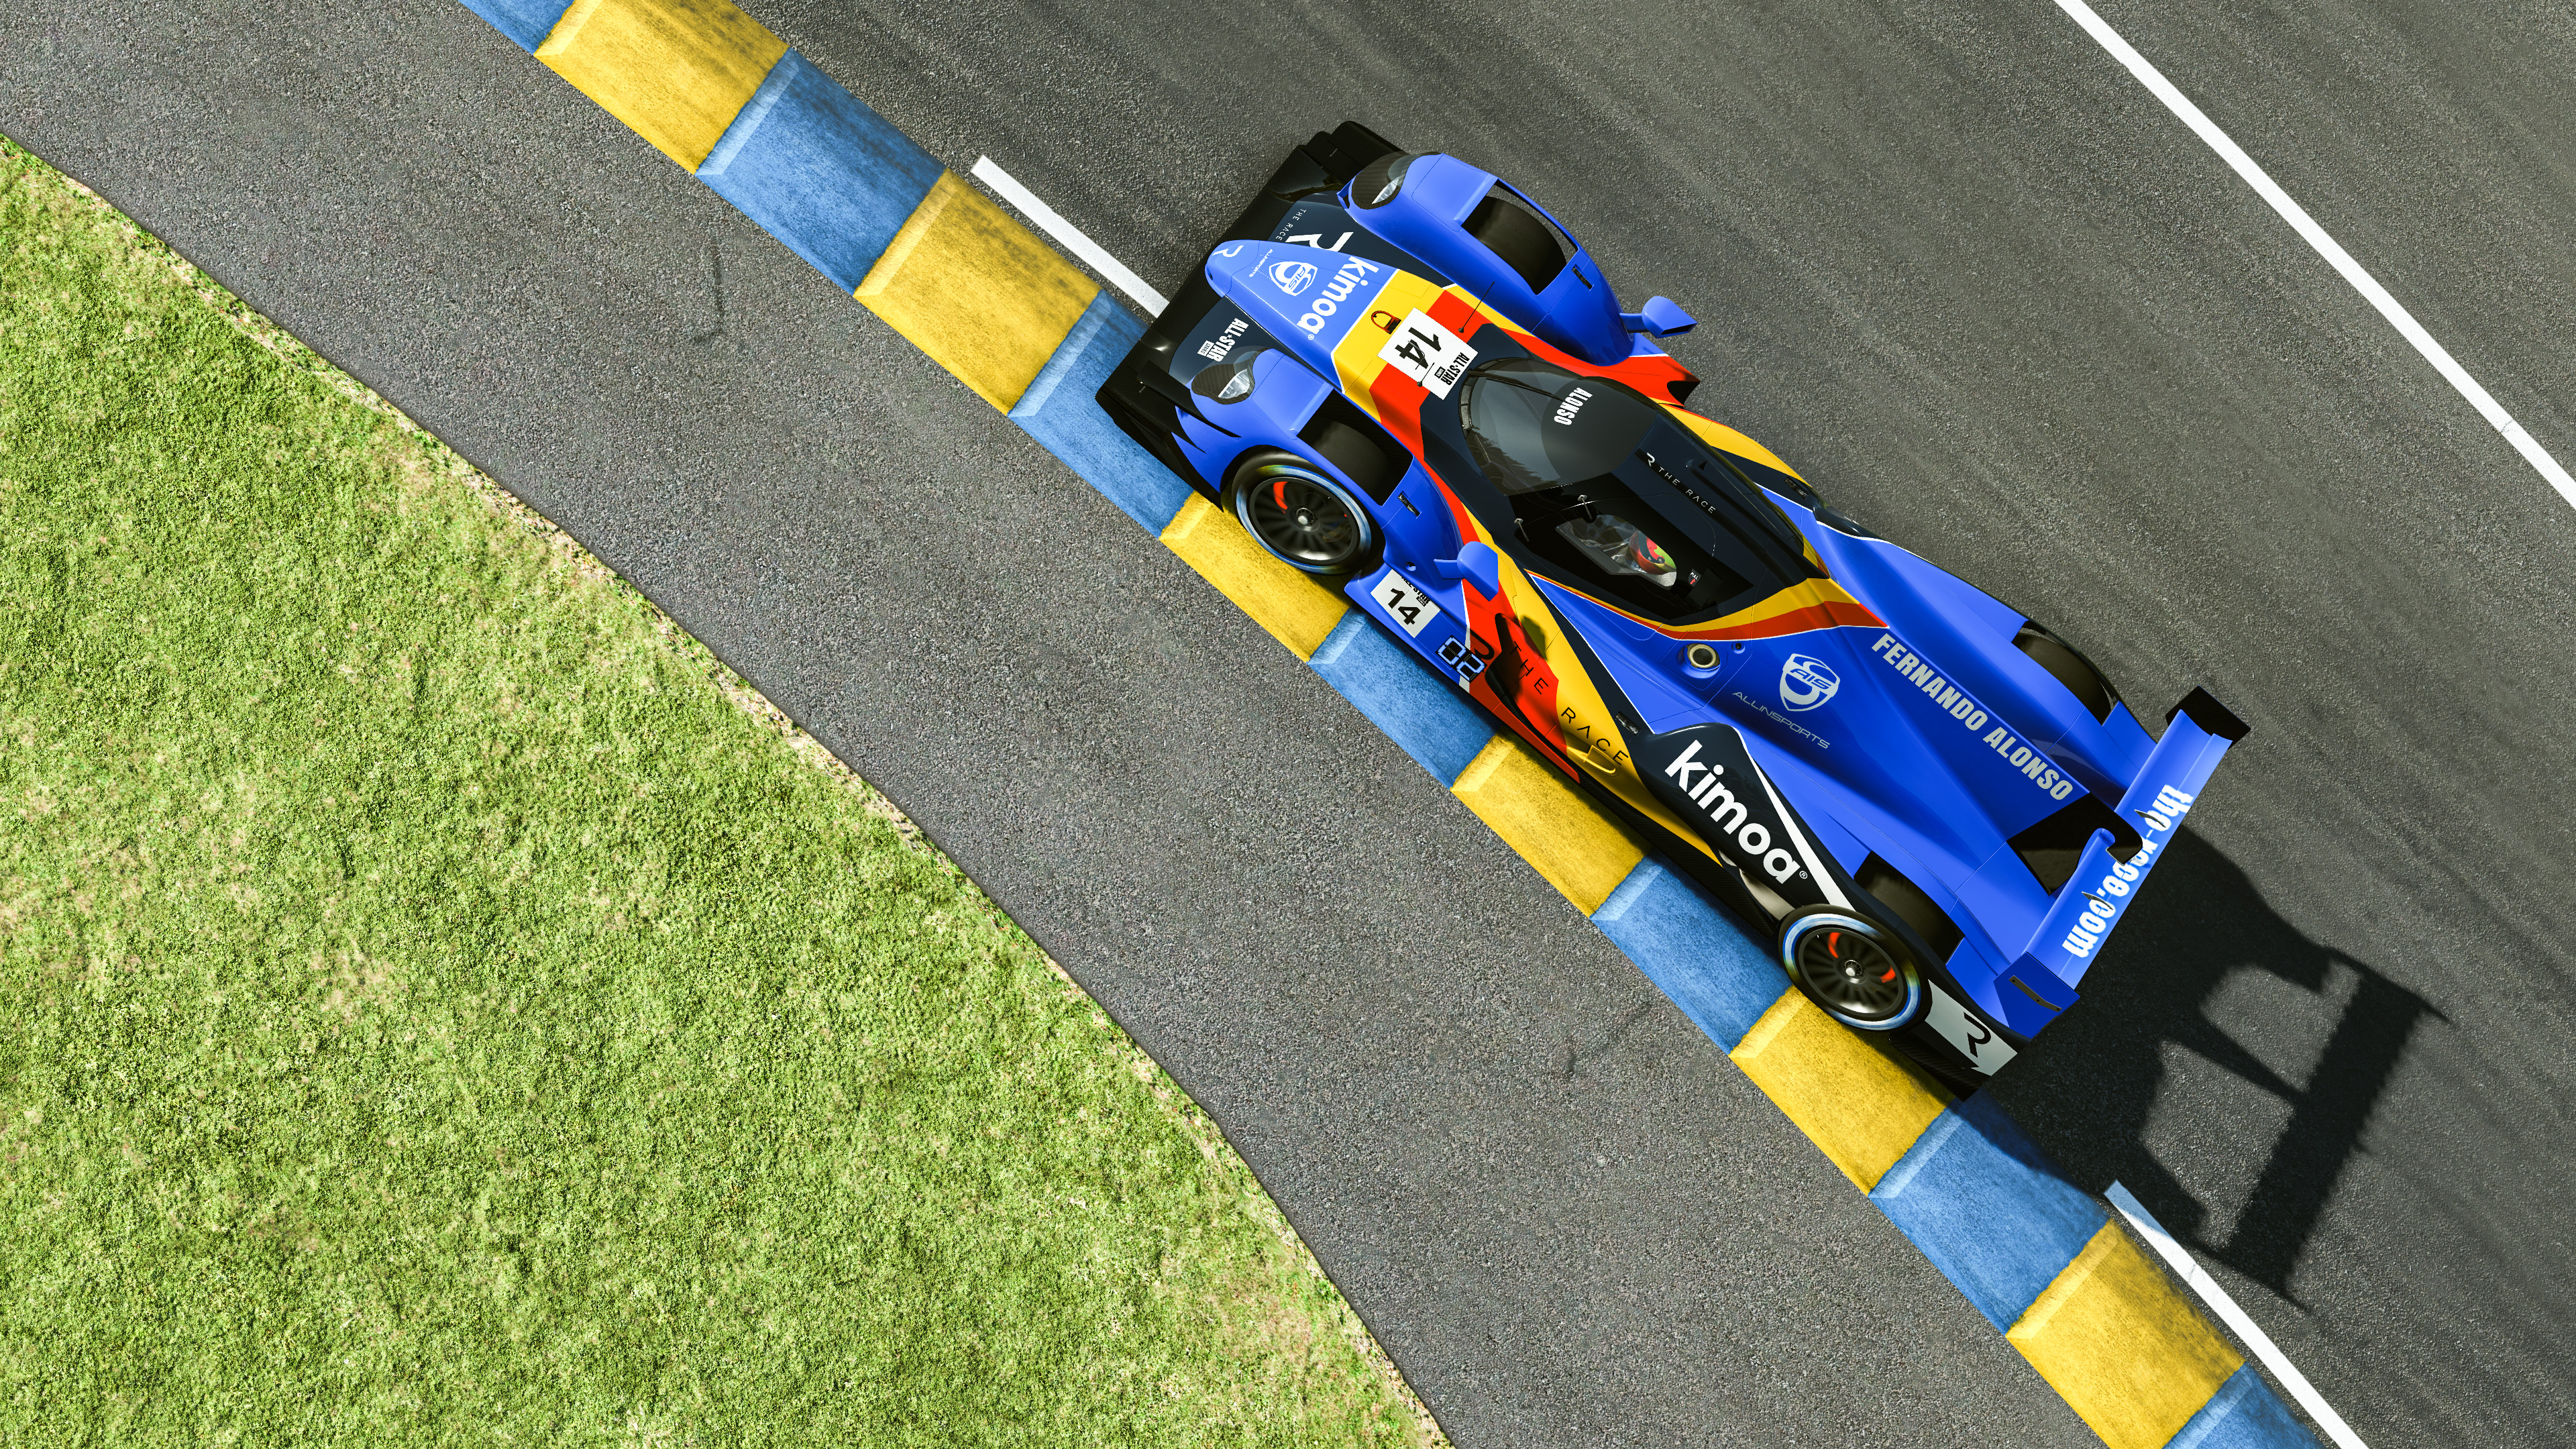 Fernando Alonso Le Mans esports Legends Trophy 2020